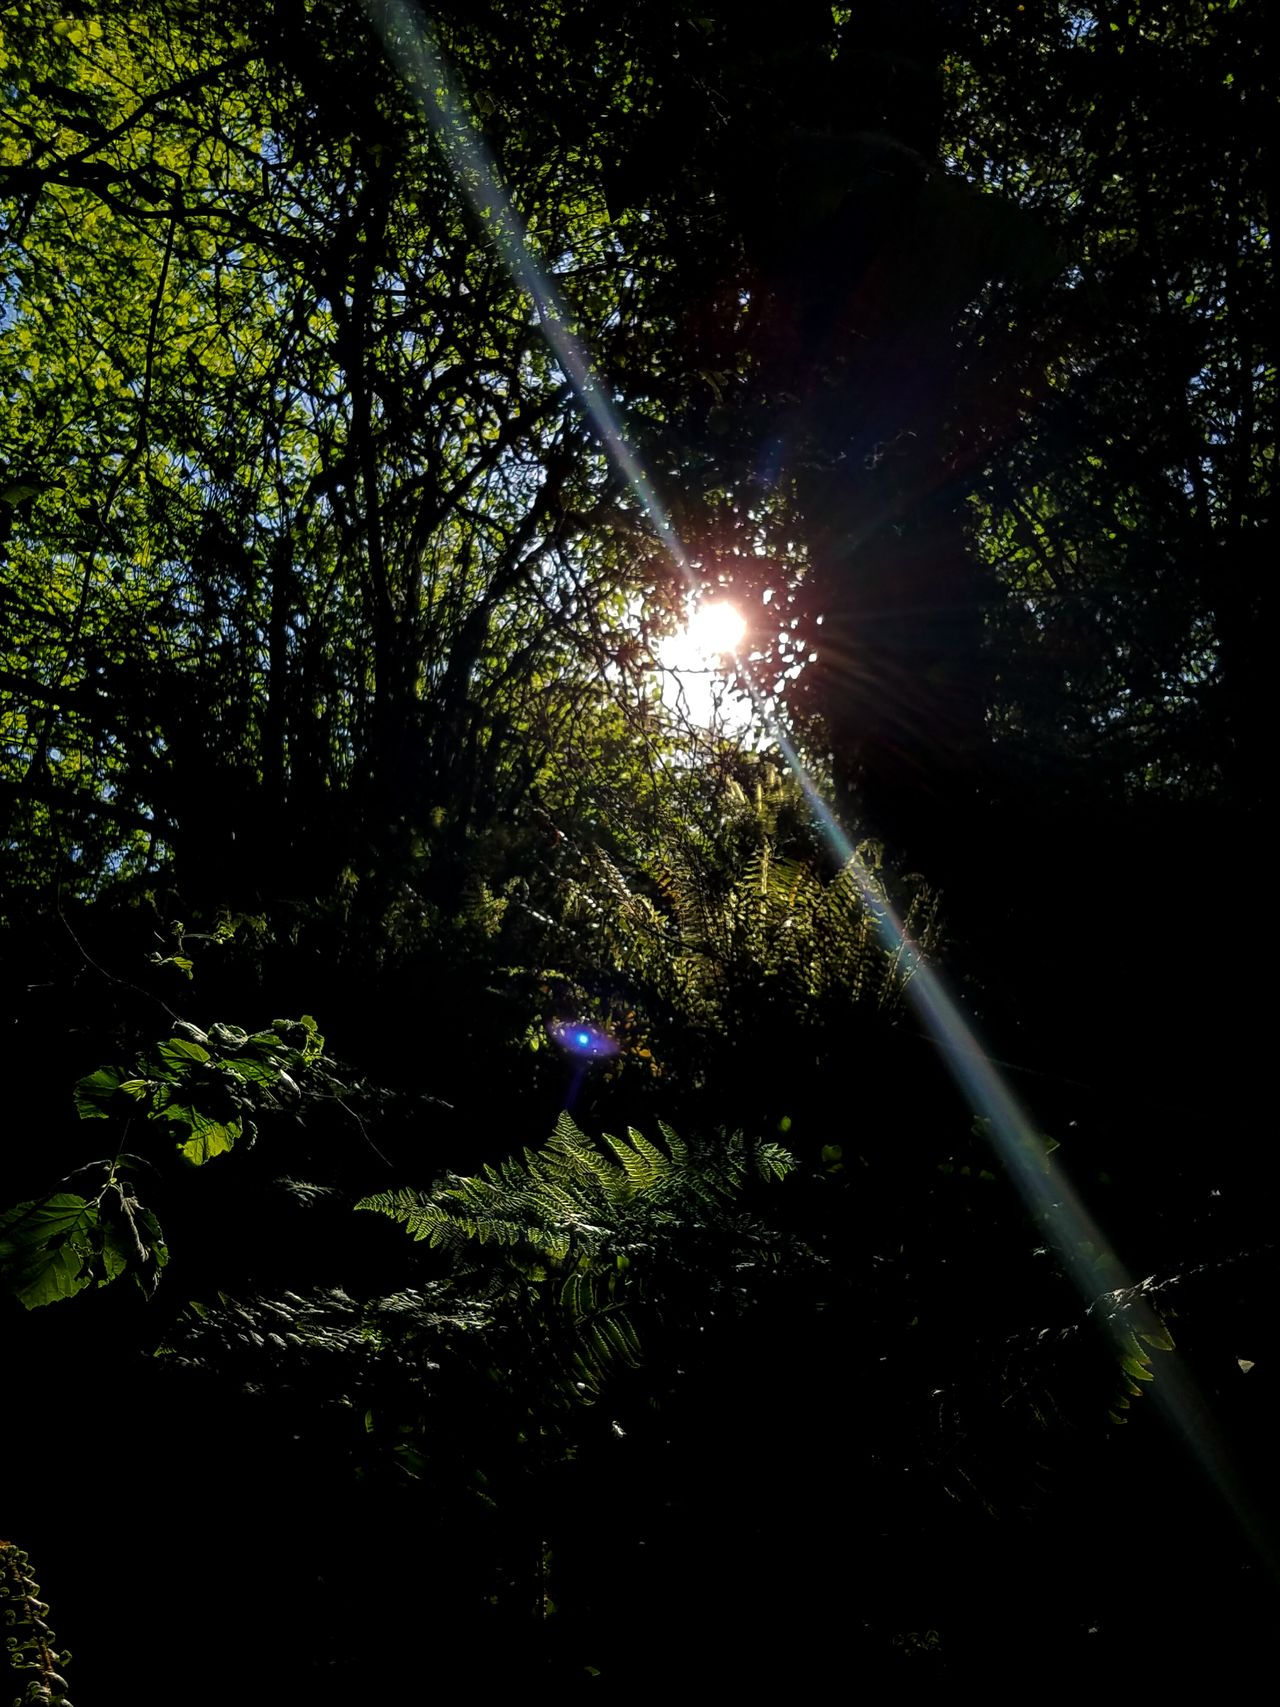 Sun threw her tree's Epic Shot Photography Eye For Photography Getty+EyeEm Collection Getty & EyeEm Collection Nature_collection Beautiful Spring Day EyeEm Nature Lover Eyeem_x_getty_collection Nature Photography The Great Outdoors With Adobe Gettyimagesinstagramgrant Taking Photos Northwestnature Nature_collection Landscape_collection EyeEmNatureLover Tree_collection  Wild & Pure Getty X EyeEm Images EyeEmxGettyImages EyeEm Best Shots - Nature Getty Image-collection Getty X EyeEm Washington State Park Nature's Diversities Gettyimagesgallery Eye4photography